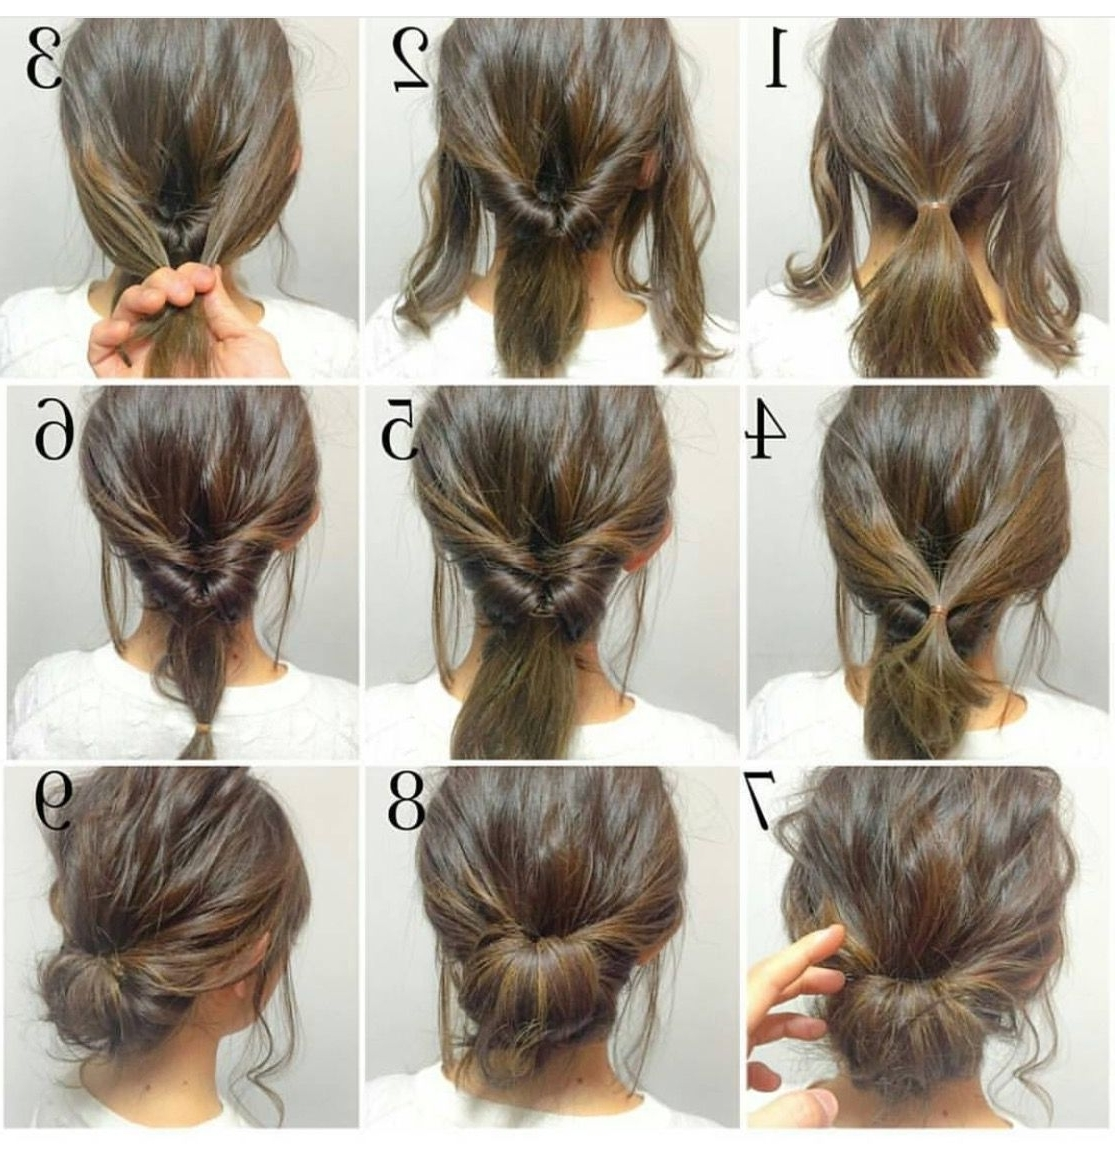 4 Messy Updos For Long Hair | Hairz | Pinterest | Updos, Hair Style Regarding Easy At Home Updos For Long Hair (View 3 of 15)